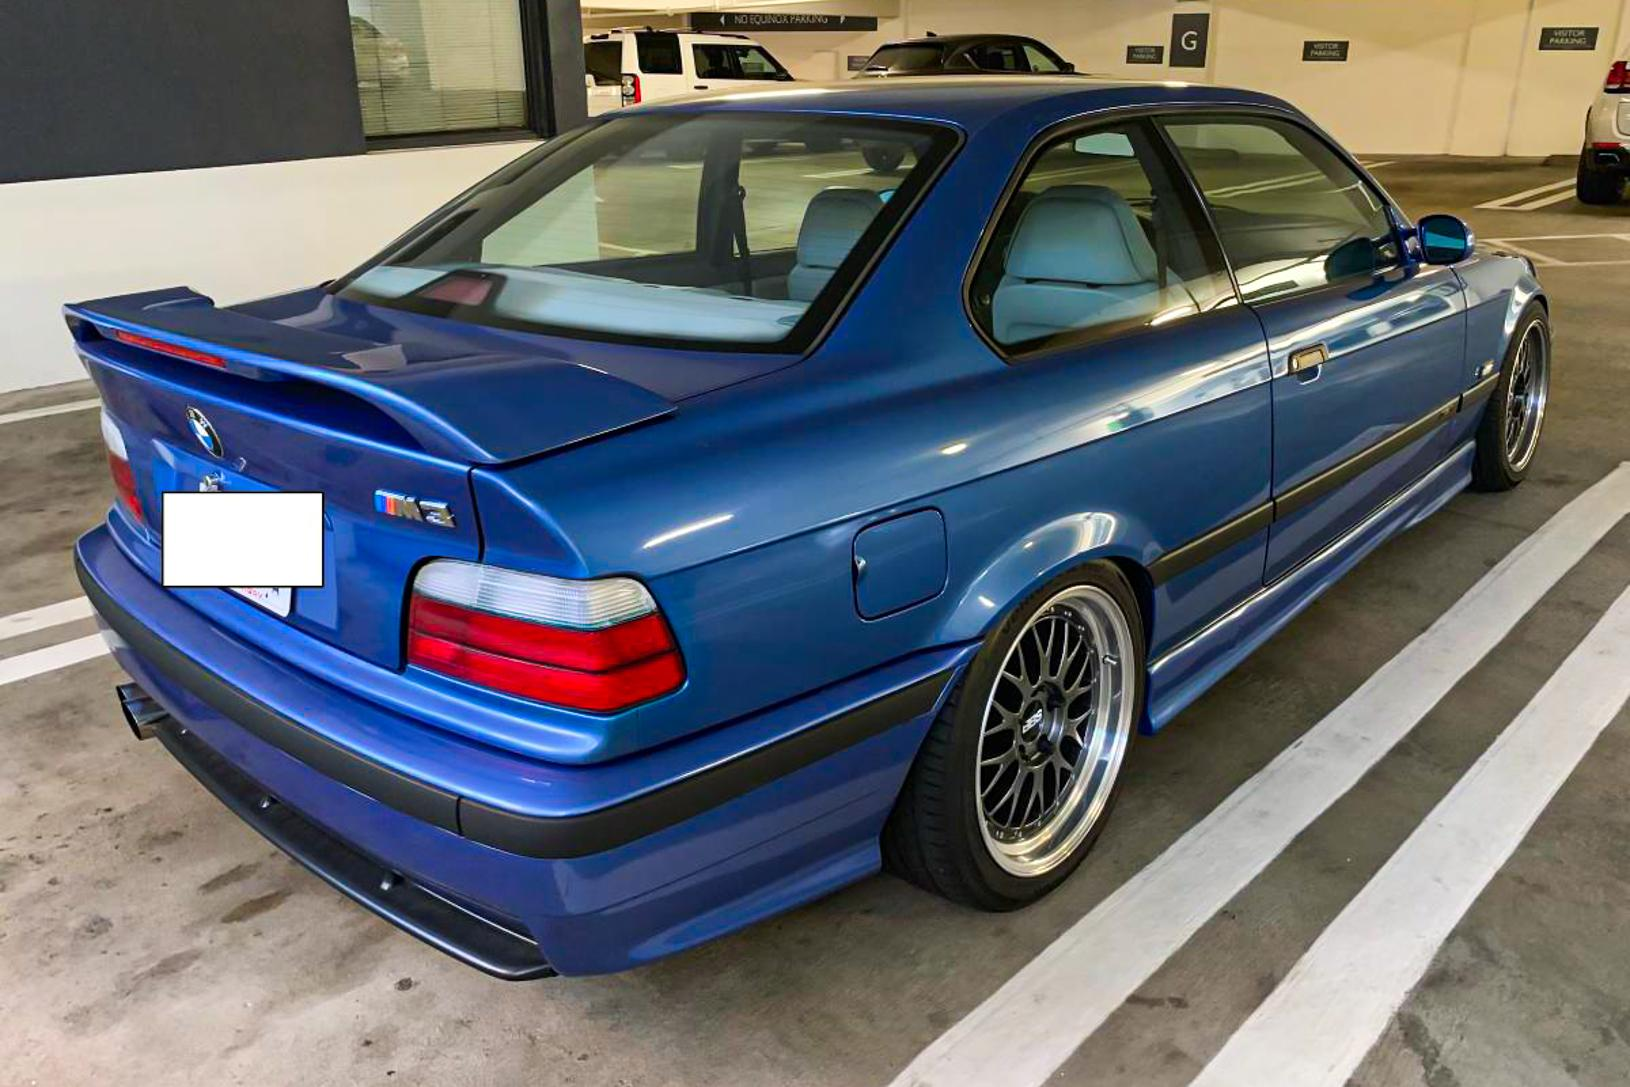 1996 BMW M3 'Supercharged'